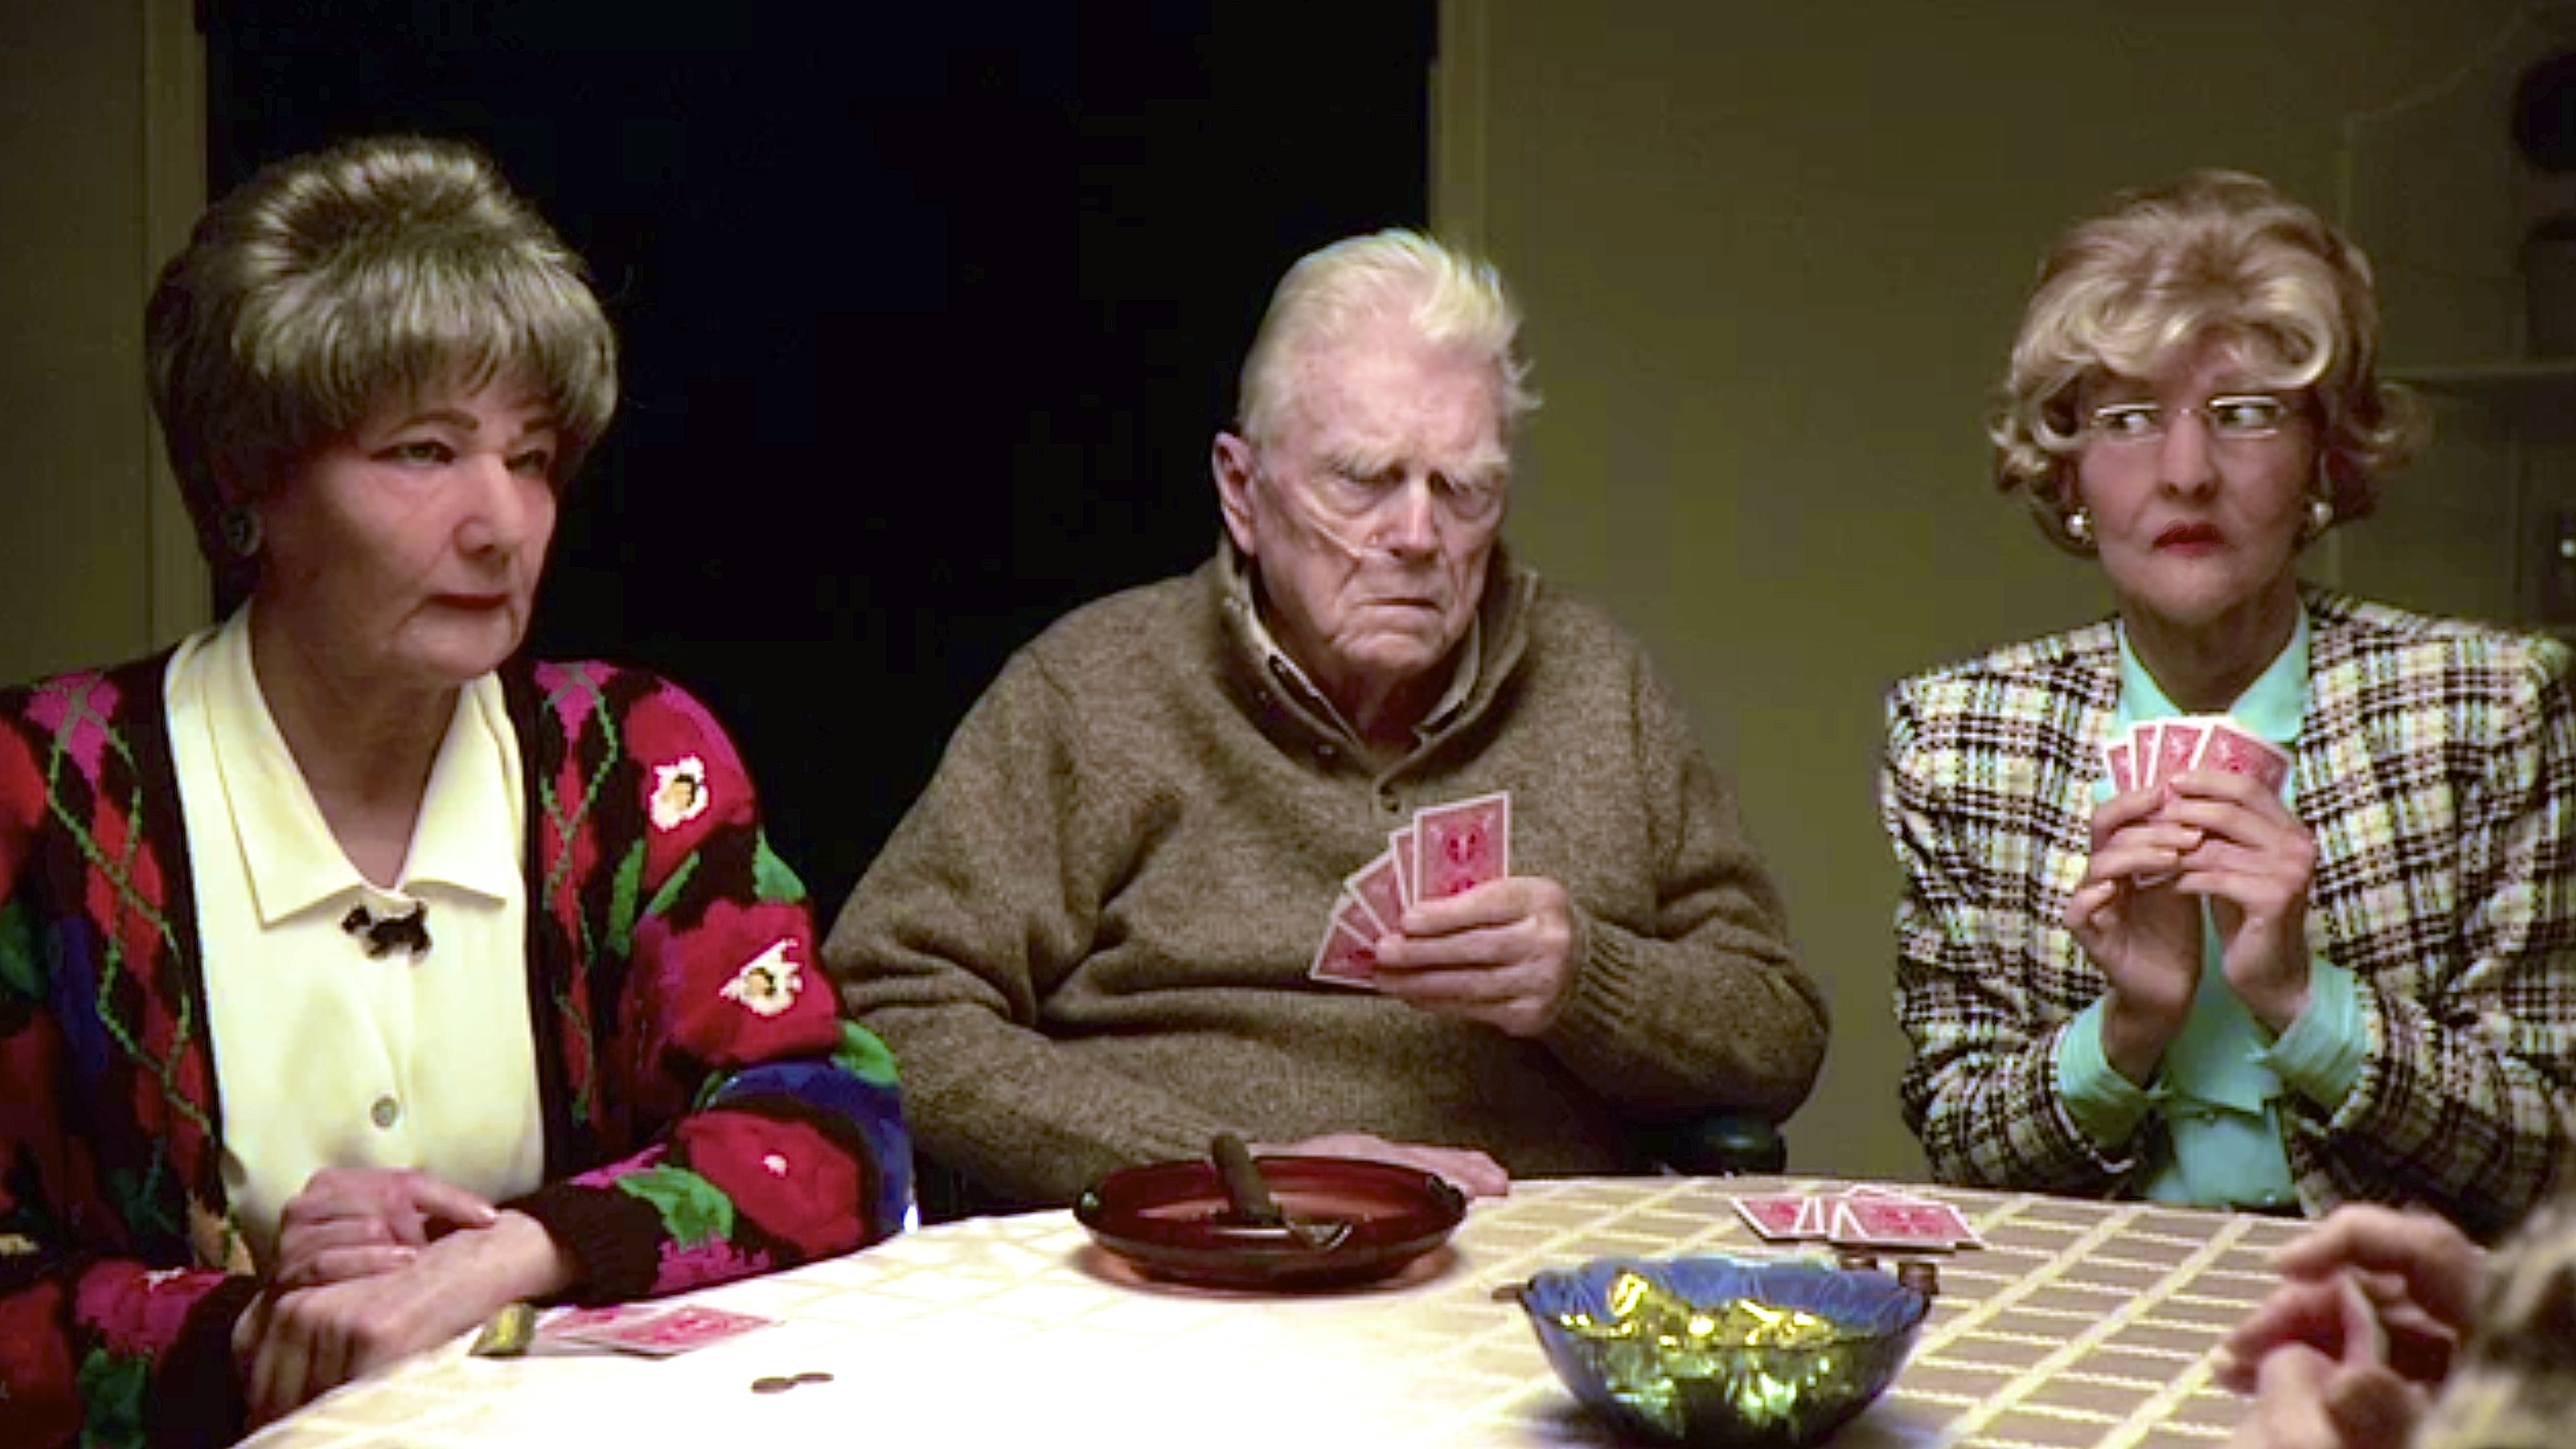 """L to R: Honora Talbott, Gordon Wells, and Sarah Smick in """"Old Souls"""""""